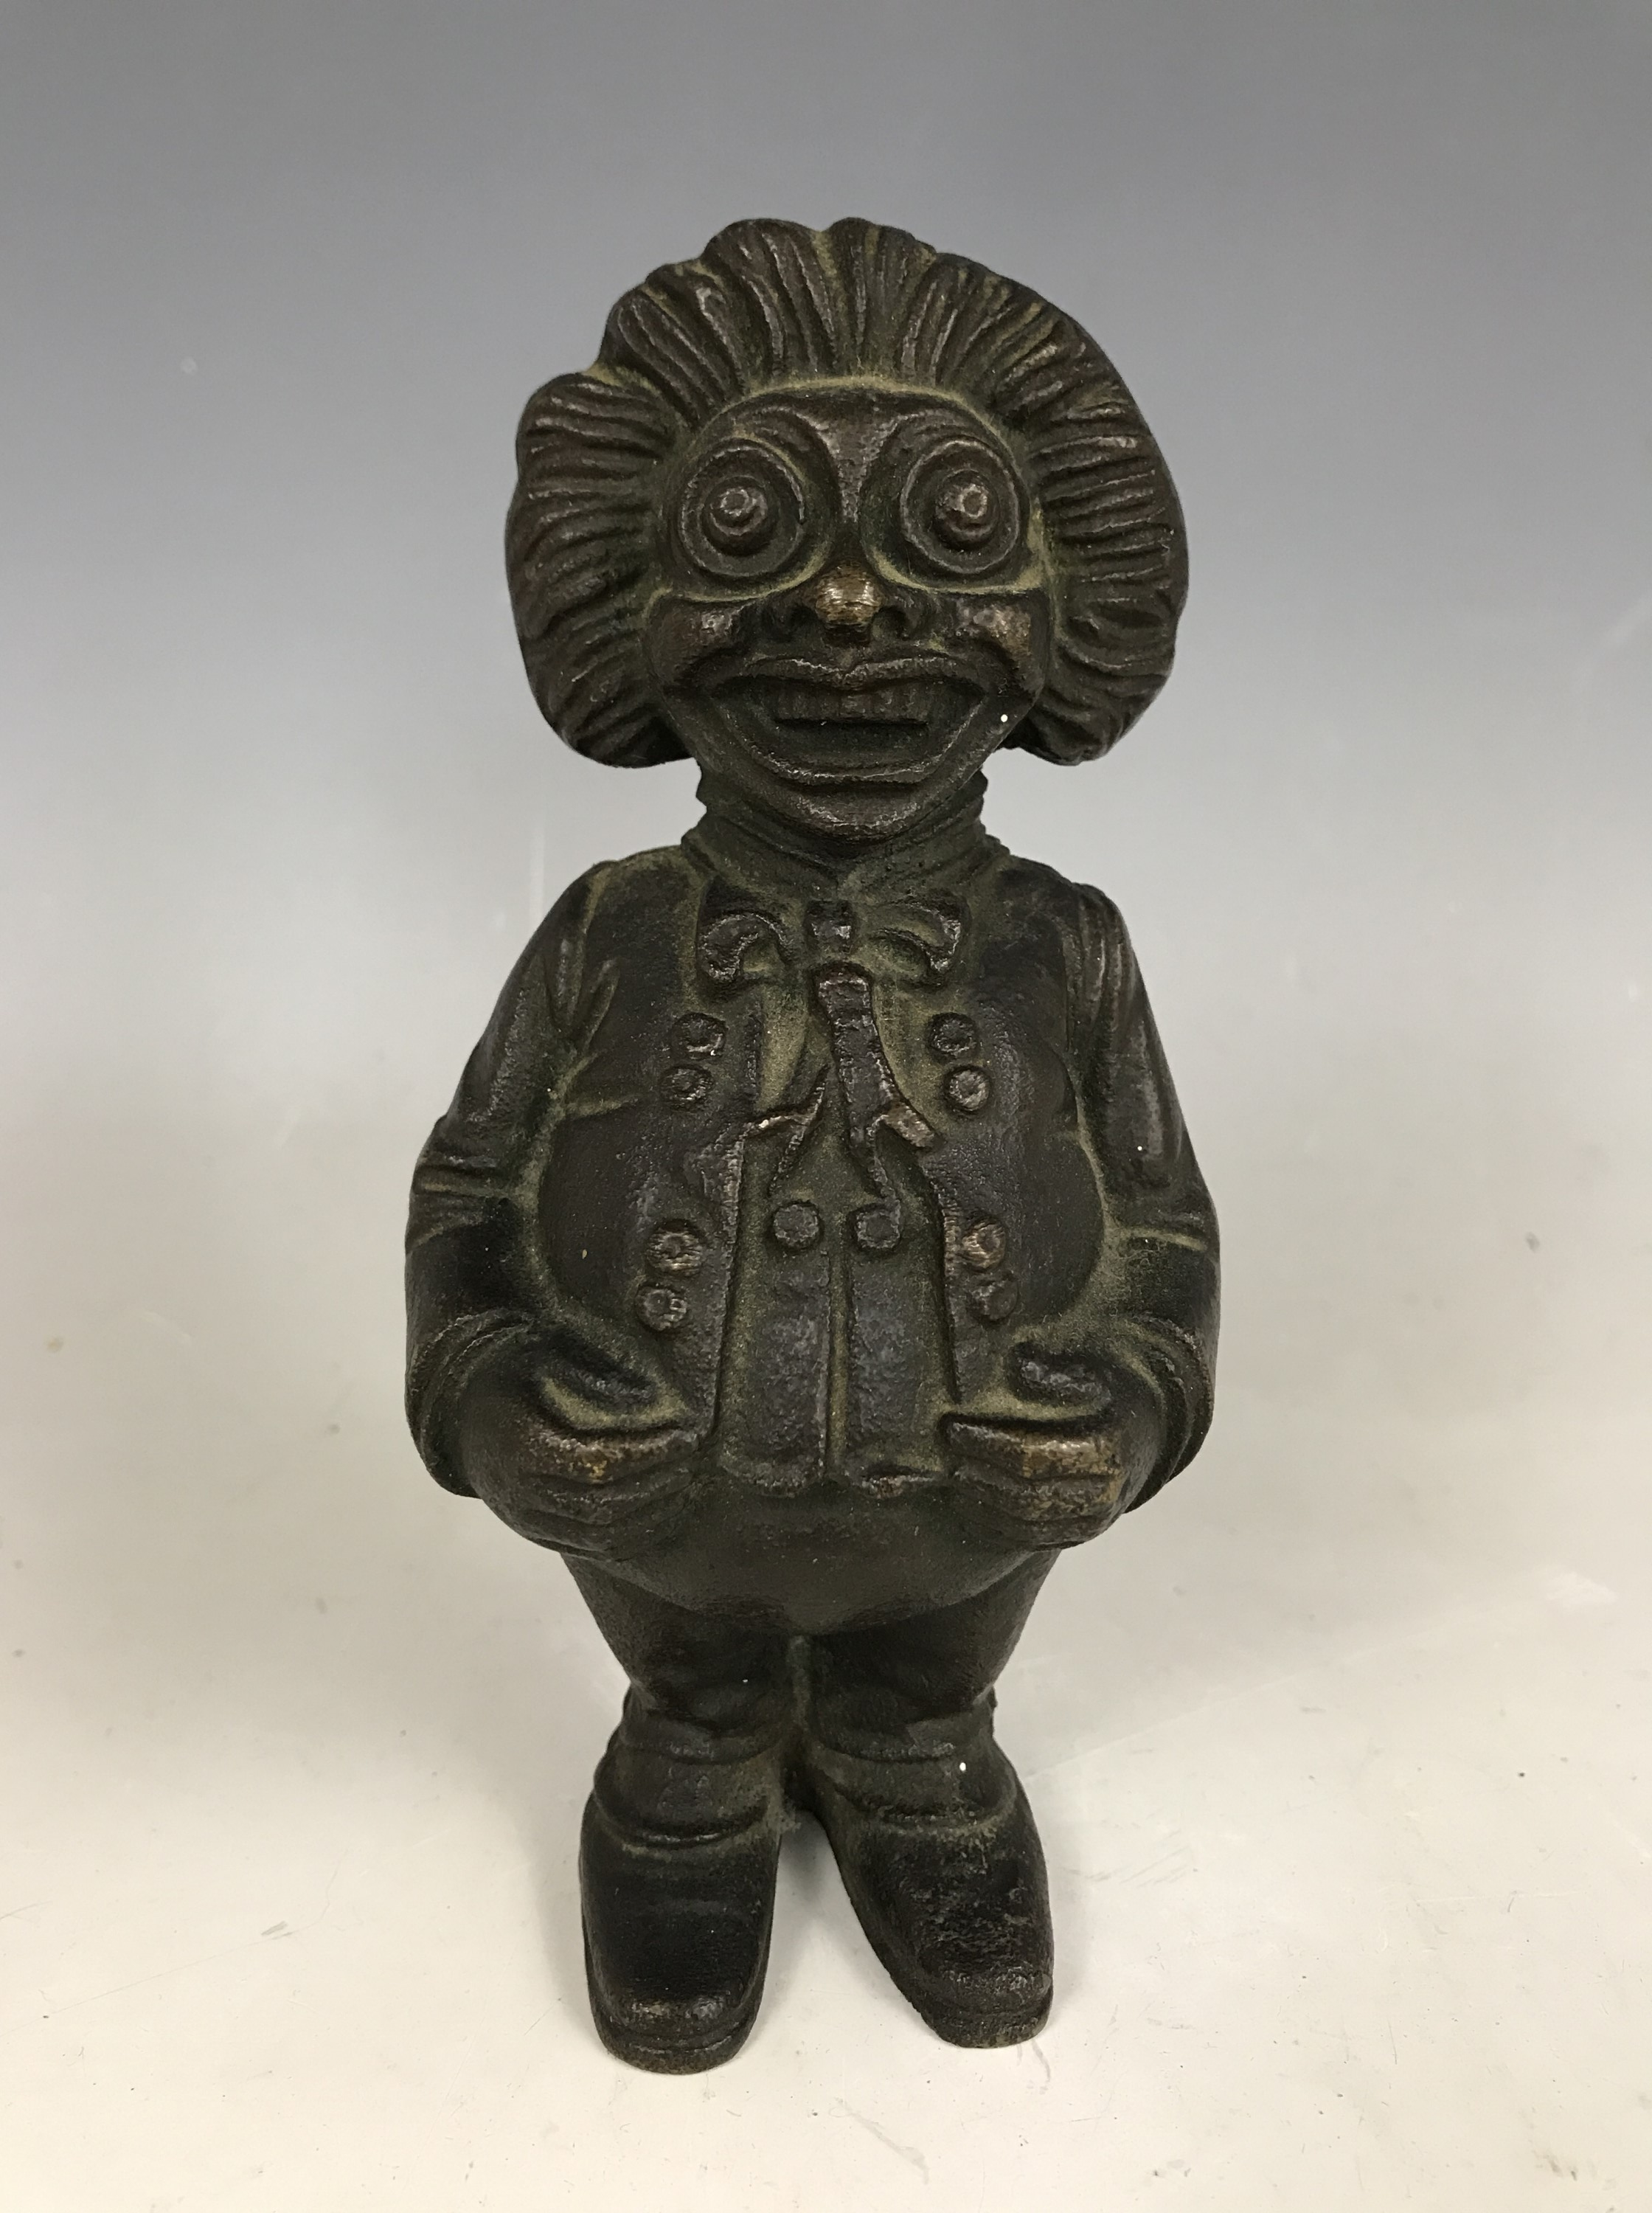 Lot 46A - A novelty patinated brass money box / bank modelled as a standing figure